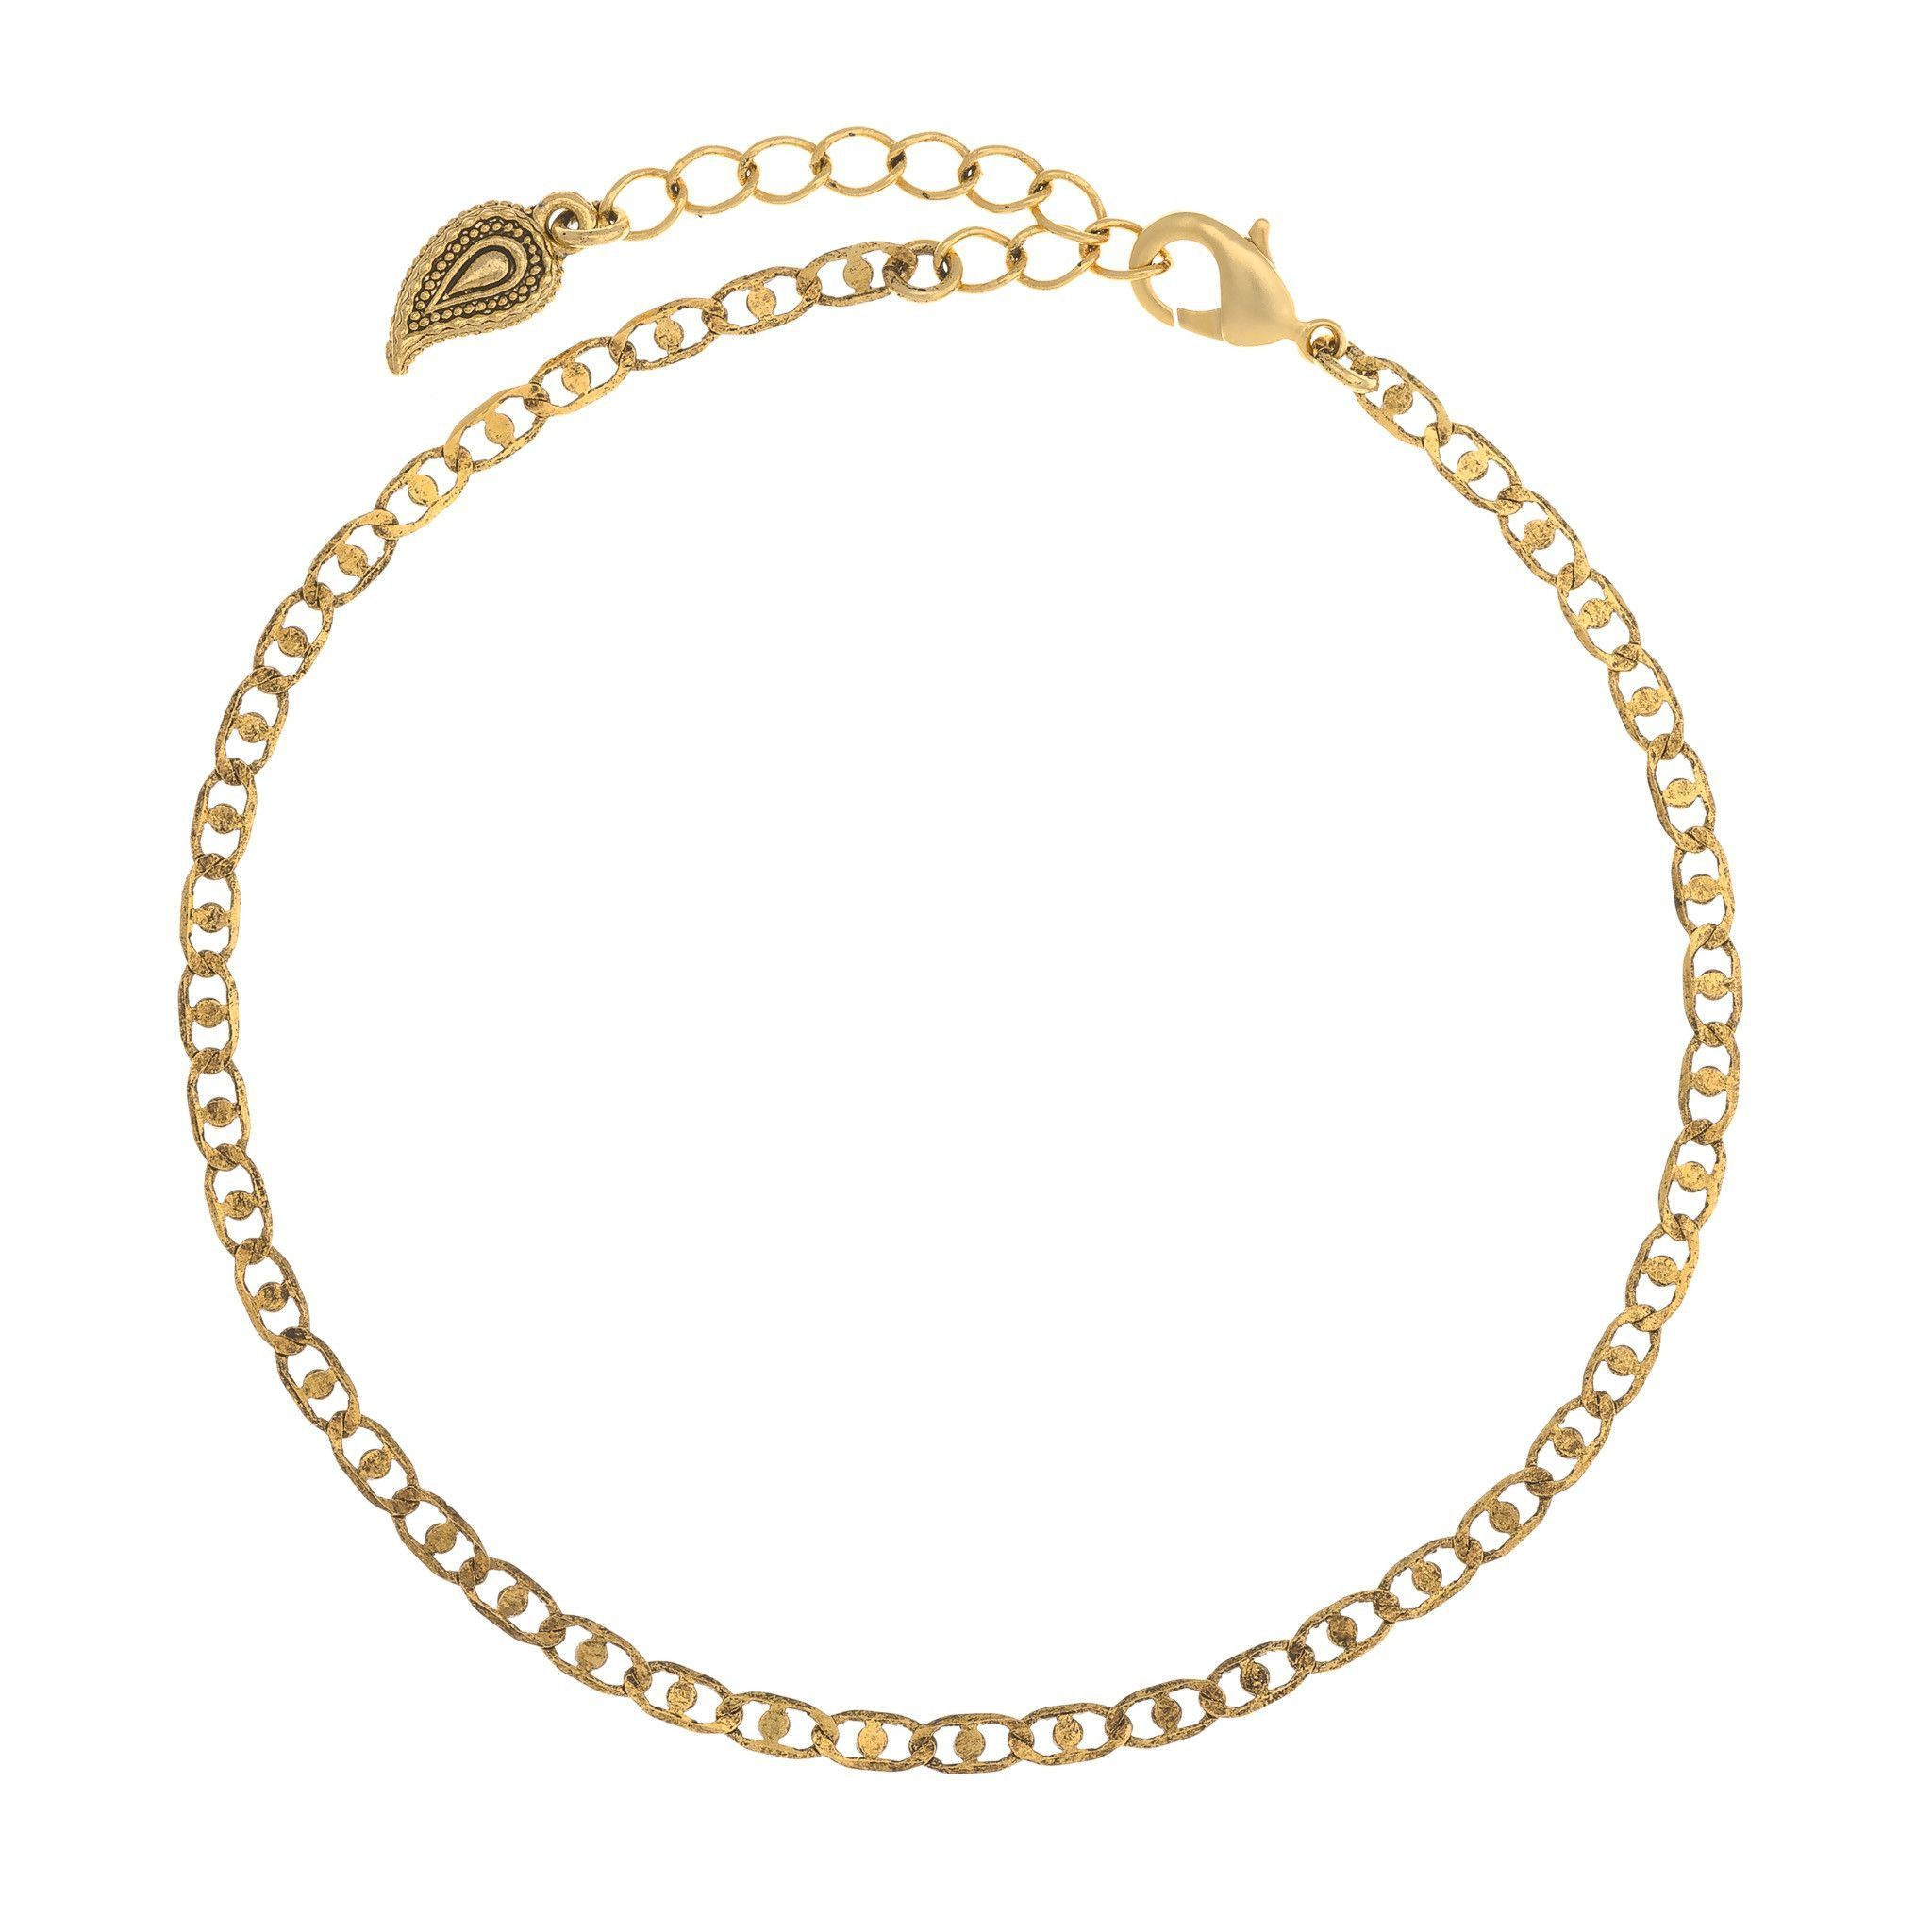 gold rope anklet shipping karat product watches overstock inc inches free com cut today mcs jewelry diamond yellow